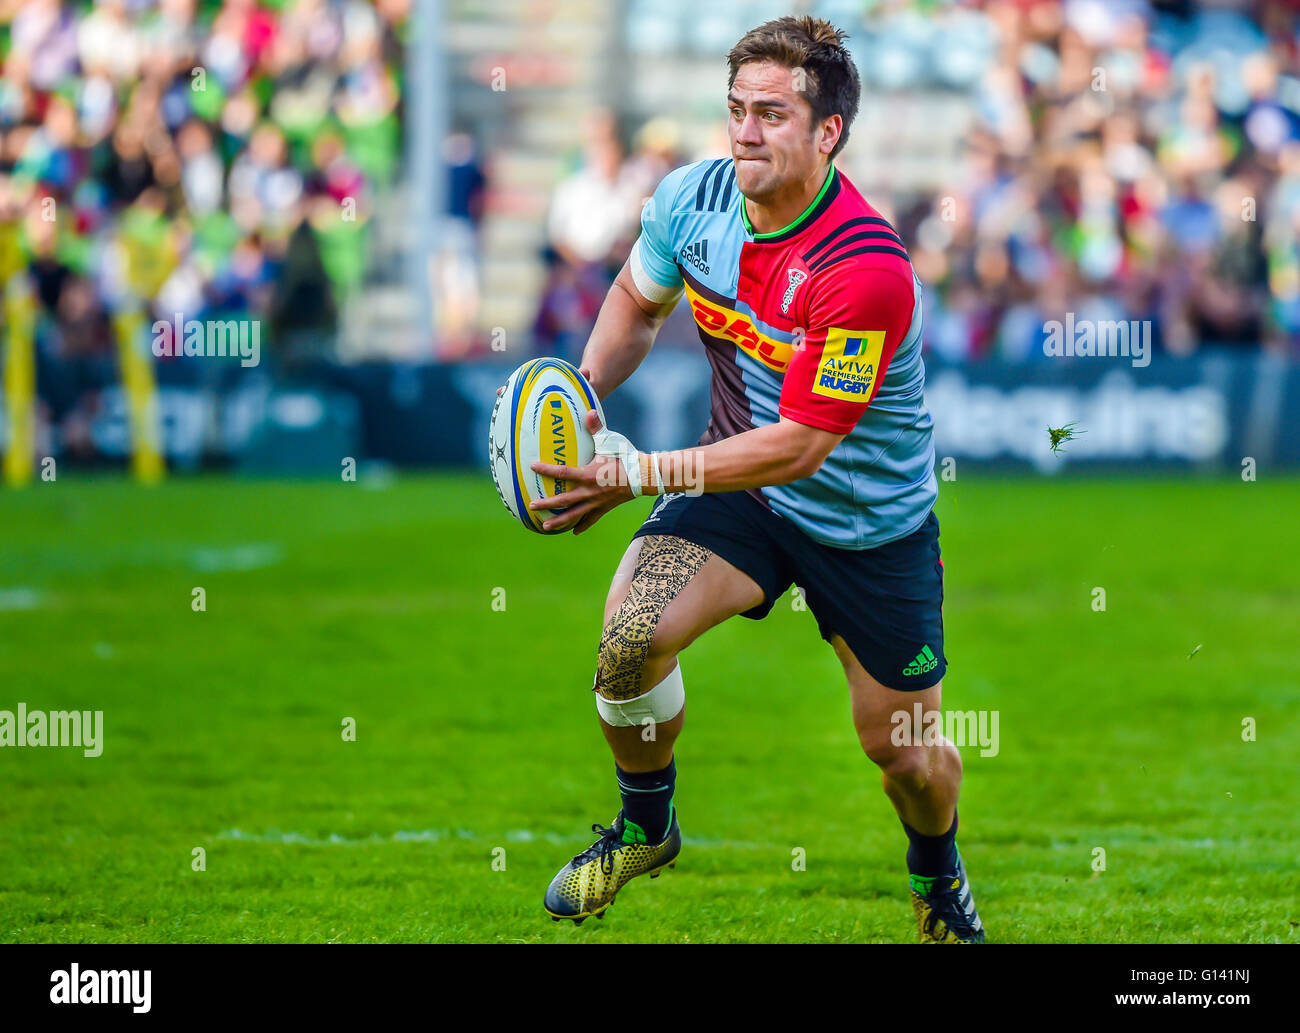 London, UK. 7th May, 2016. Harlequins  player - Ben Botica was in action during the Aviva Premiership Rugby - Harlequins - Stock Image